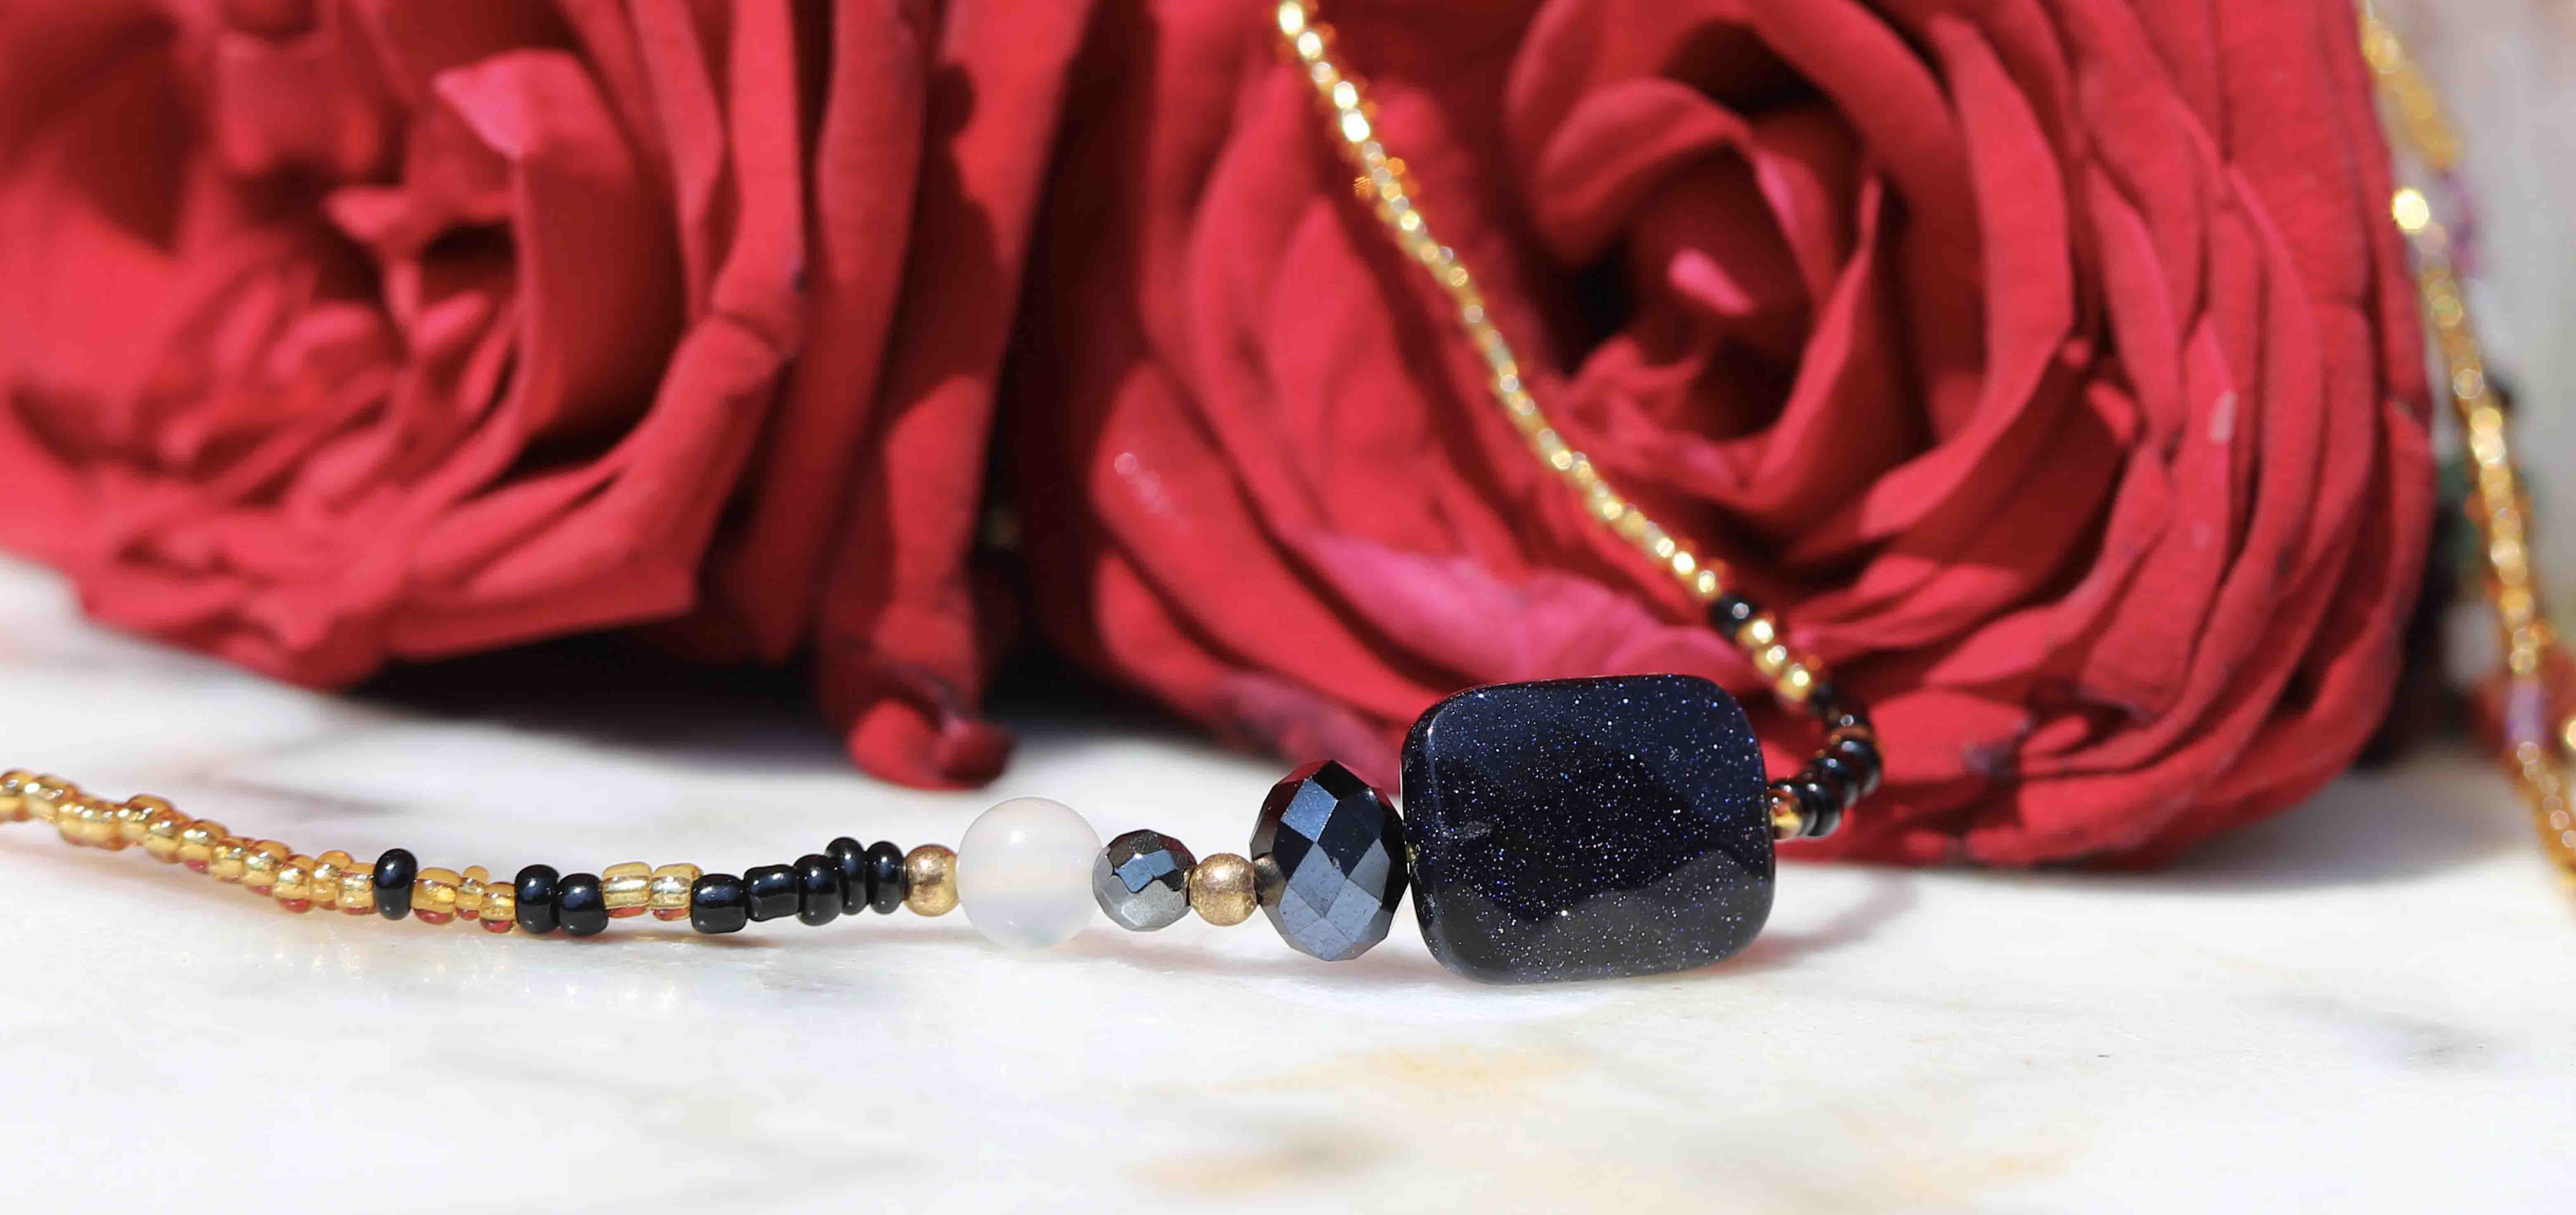 Diane_nature_morte_Onyx_quartz à inclusion_hématite